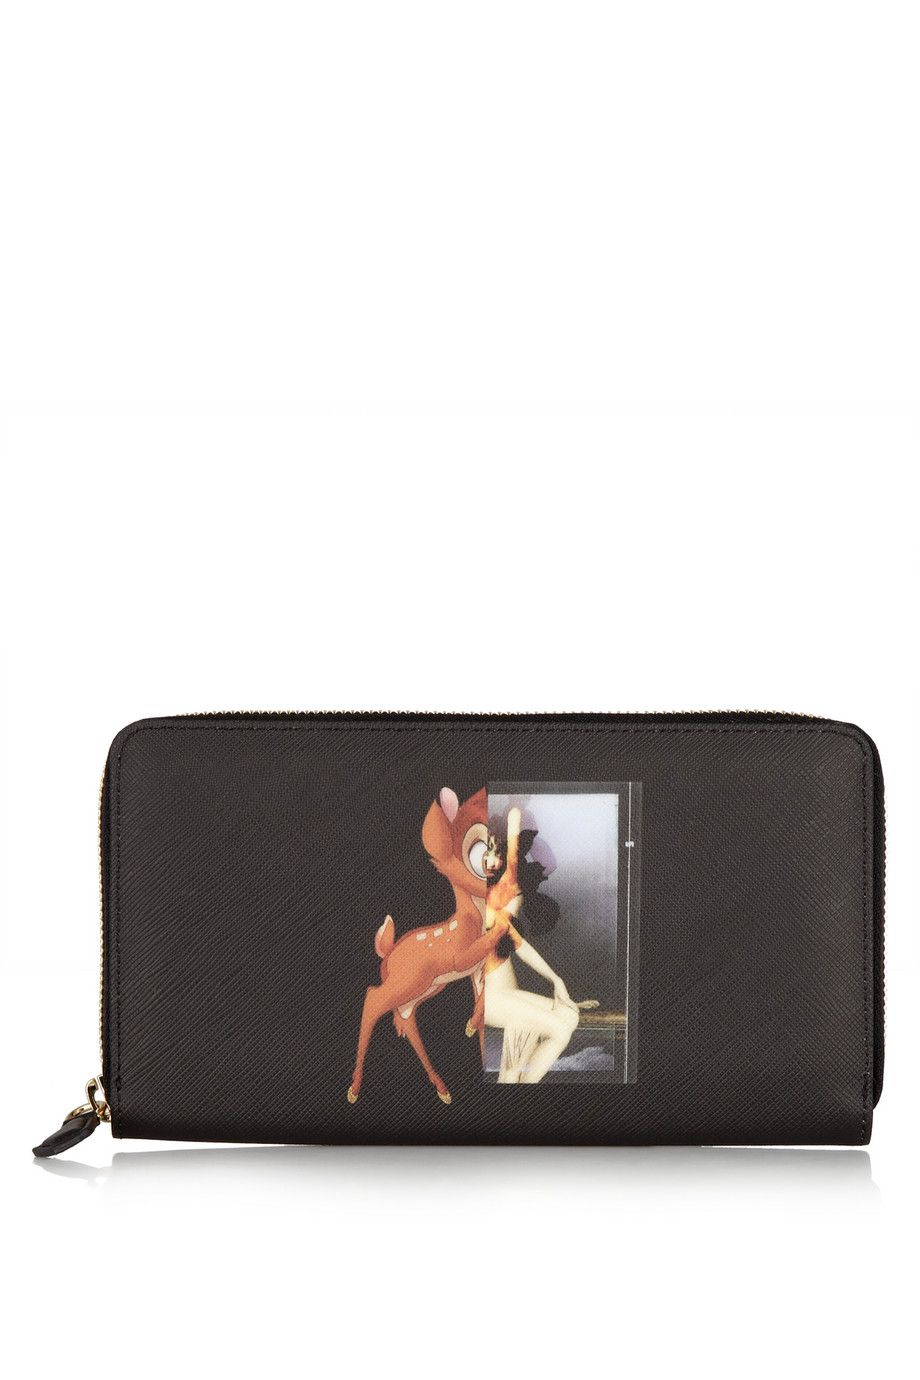 Givenchy|Bambi wallet in coated-canvas|NET-A-PORTER.COM